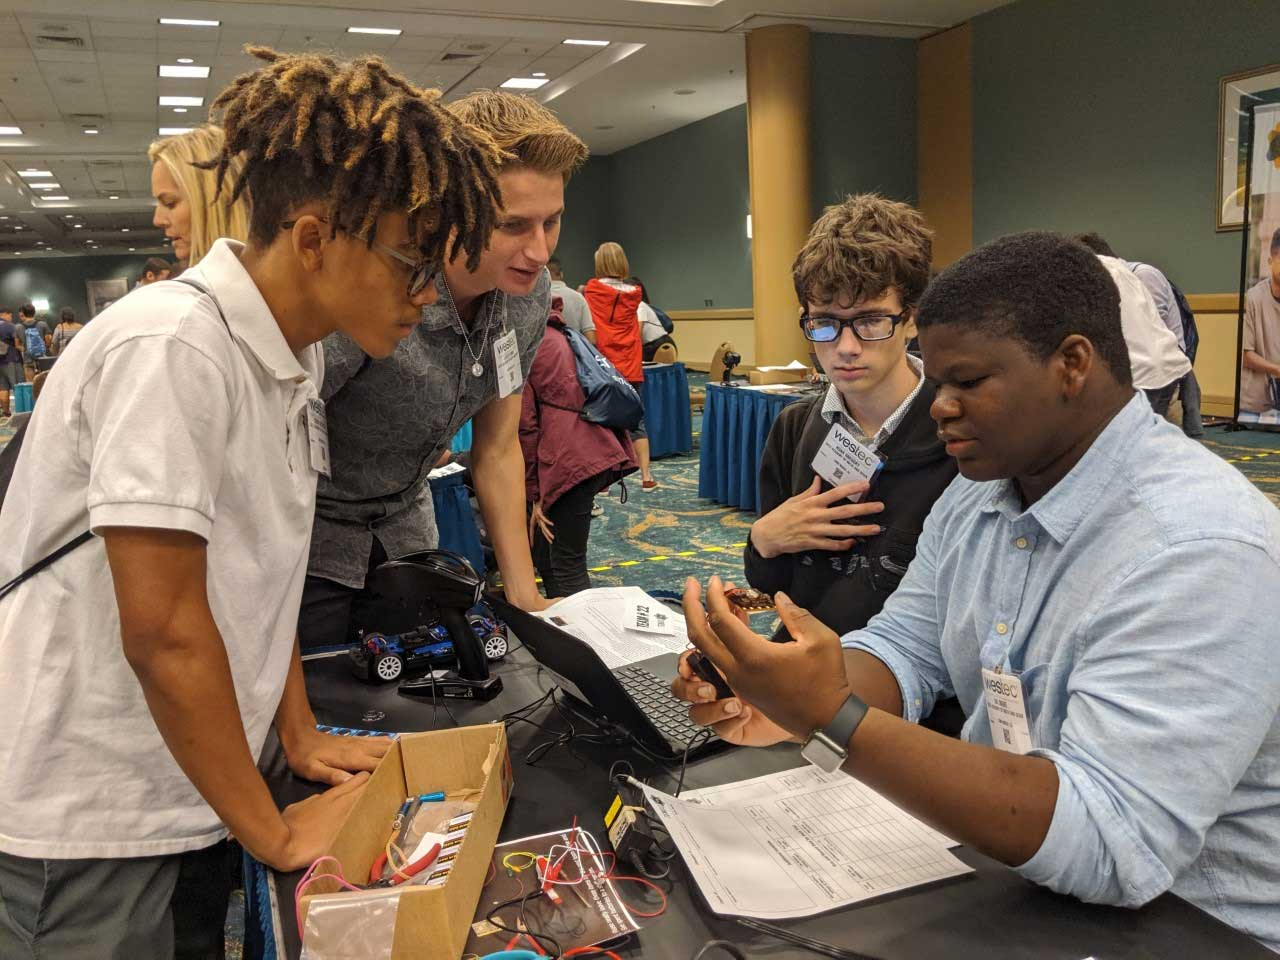 WESTEC-2019---Tobias-McIntosh,-Obiora-Okeke,-Jayce-Ferris-and-Noah-Gregory-working-on-their-race-car-with-data-collection-and-analysis.jpg